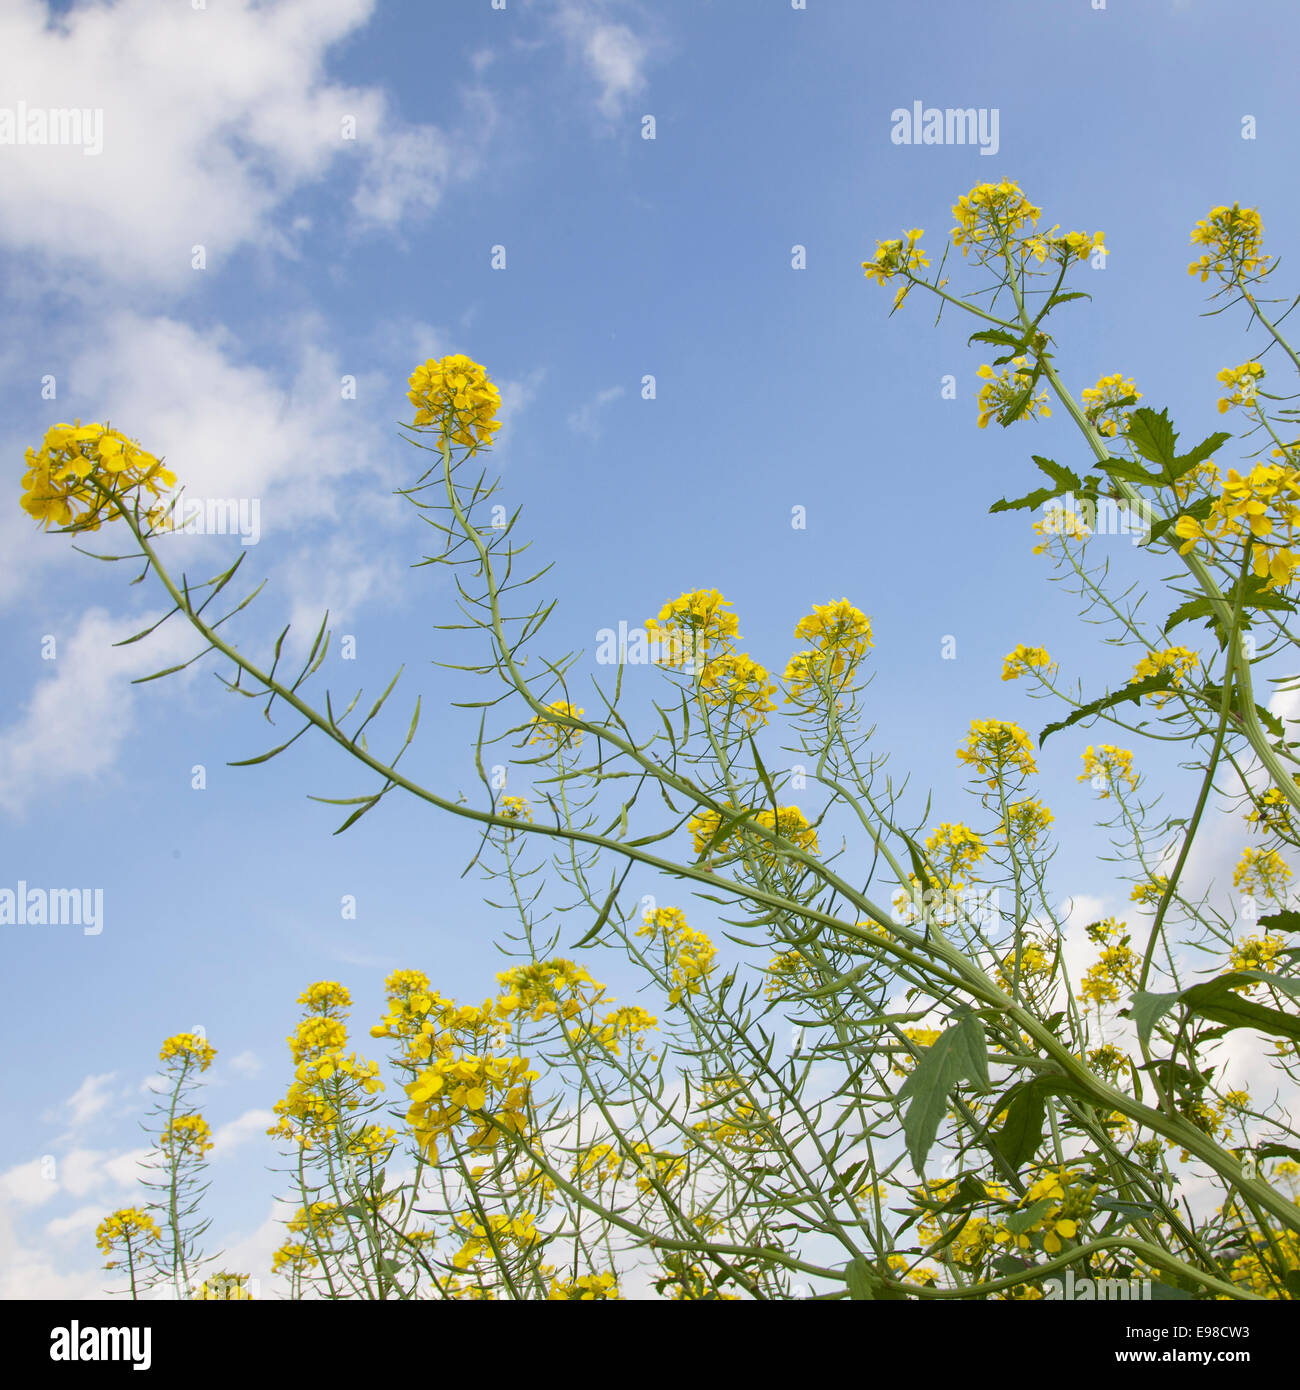 Mustard Seed Stock Photos & Mustard Seed Stock Images - Alamy